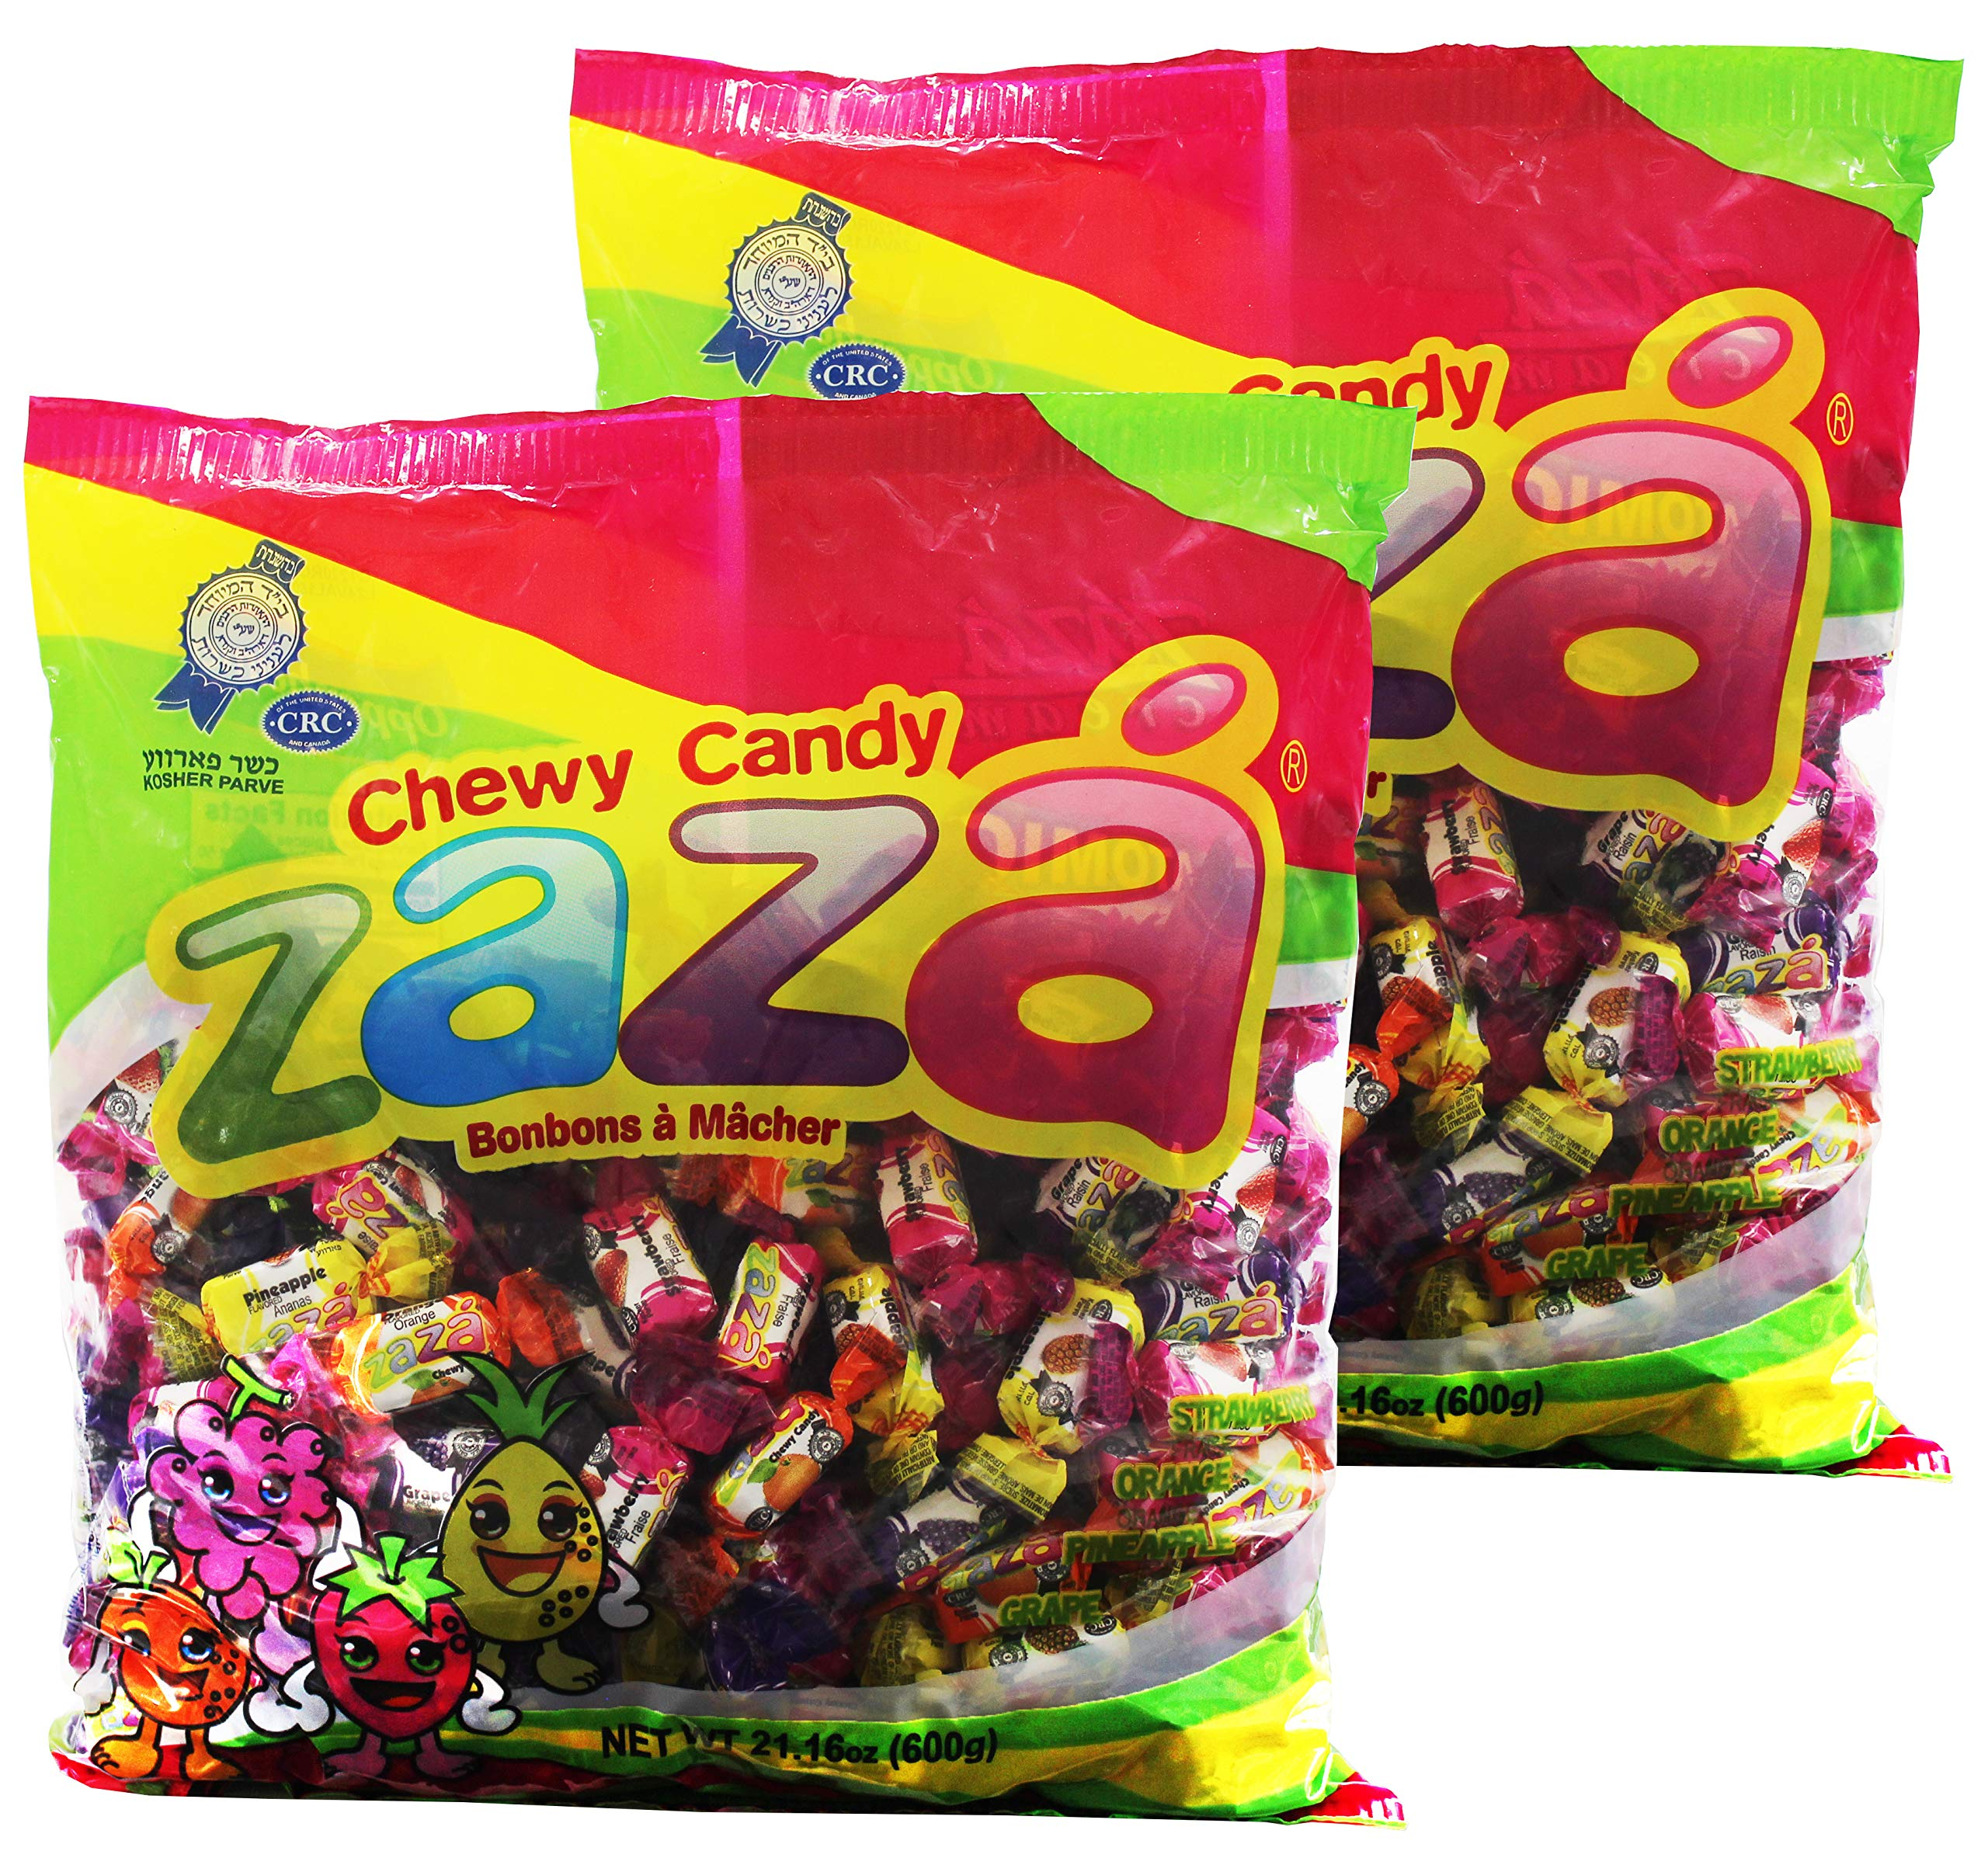 Zaza Assorted Bulk Chewy Candy, Colorful Flavorful Fruity Individually Wrapped Kosher Sweet candies, Halloween Trick or Treat, Variety Pack for Holiday Party, Valentines, Christmas, Thanksgiving, or Office Reception Desk As Seen BH Photo & Chase Bank